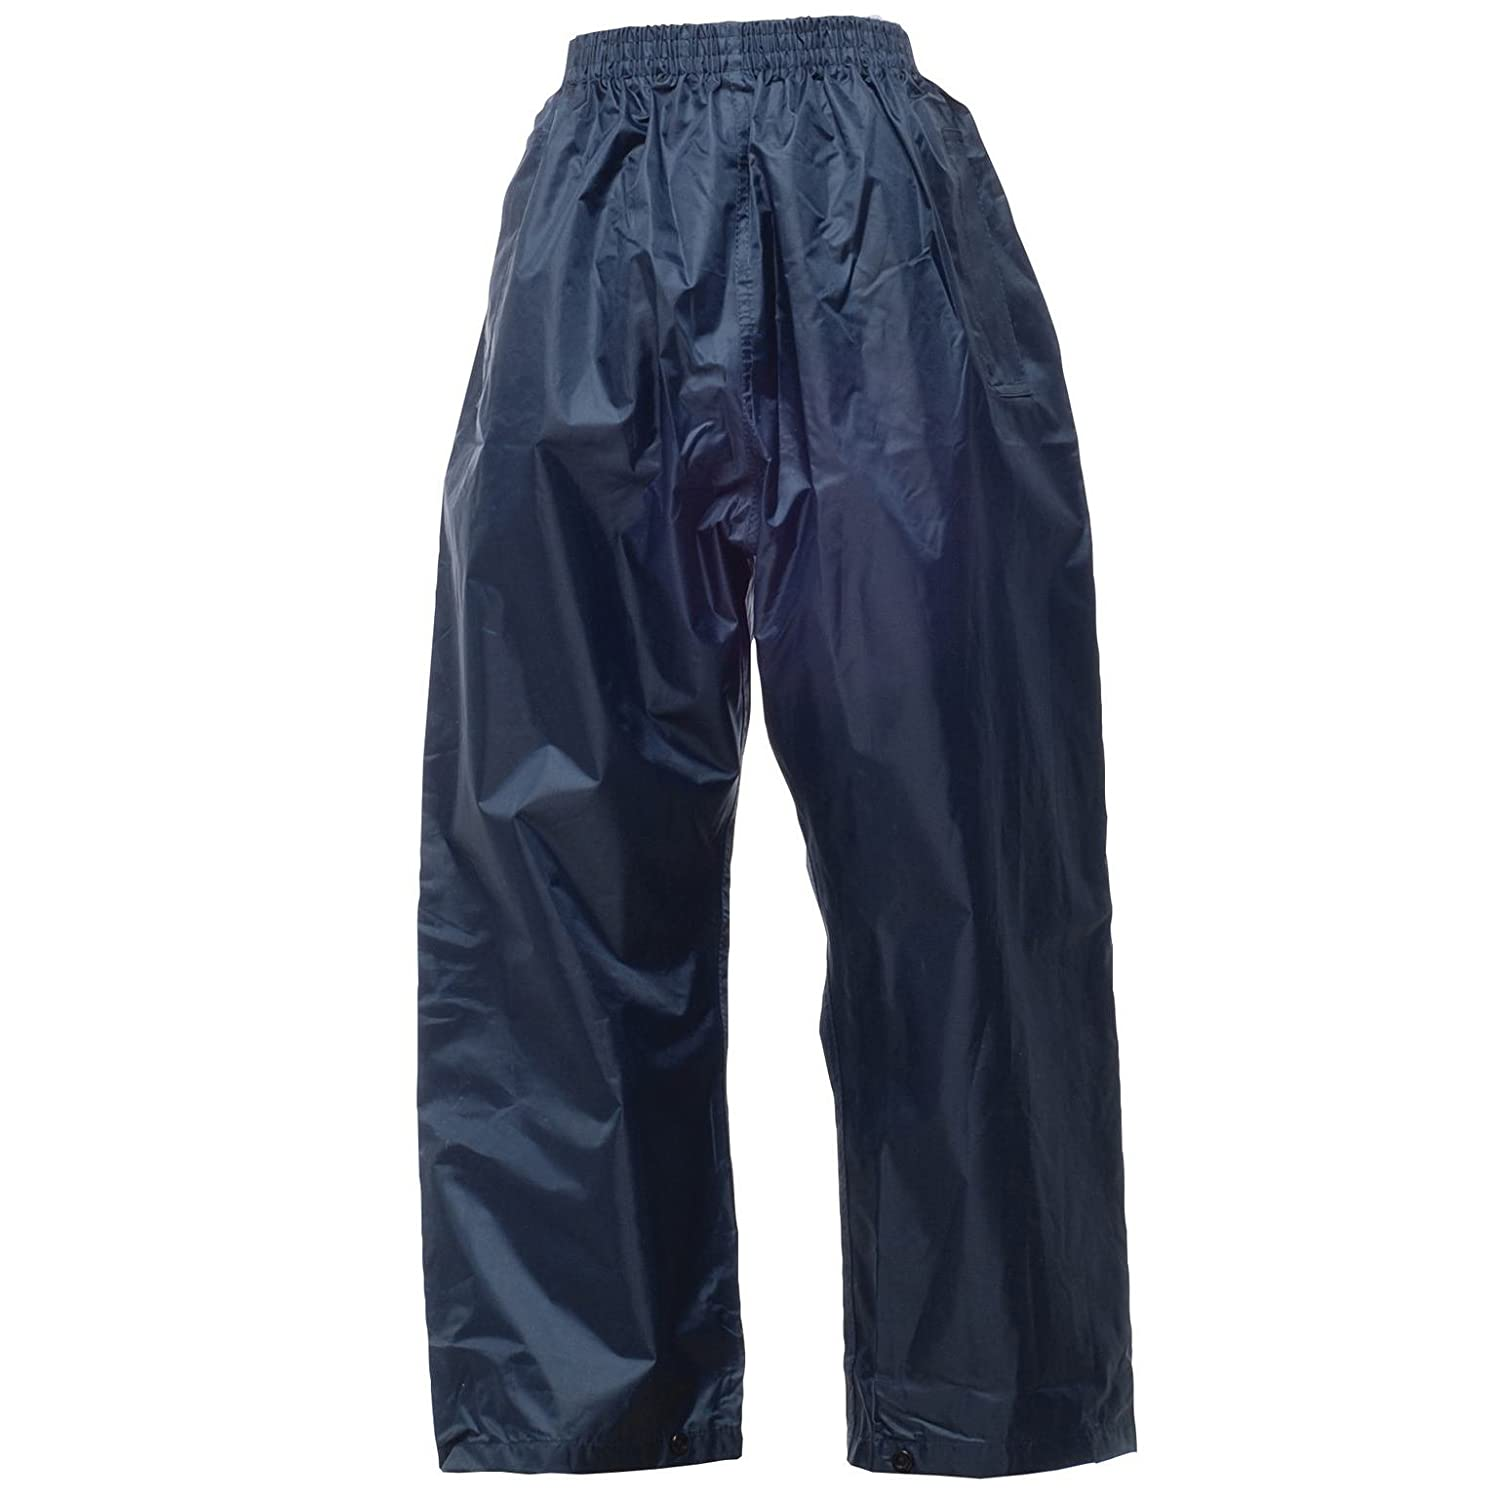 Kid's stormbreak over trousers COLOUR Navy SIZE 11 TO 12